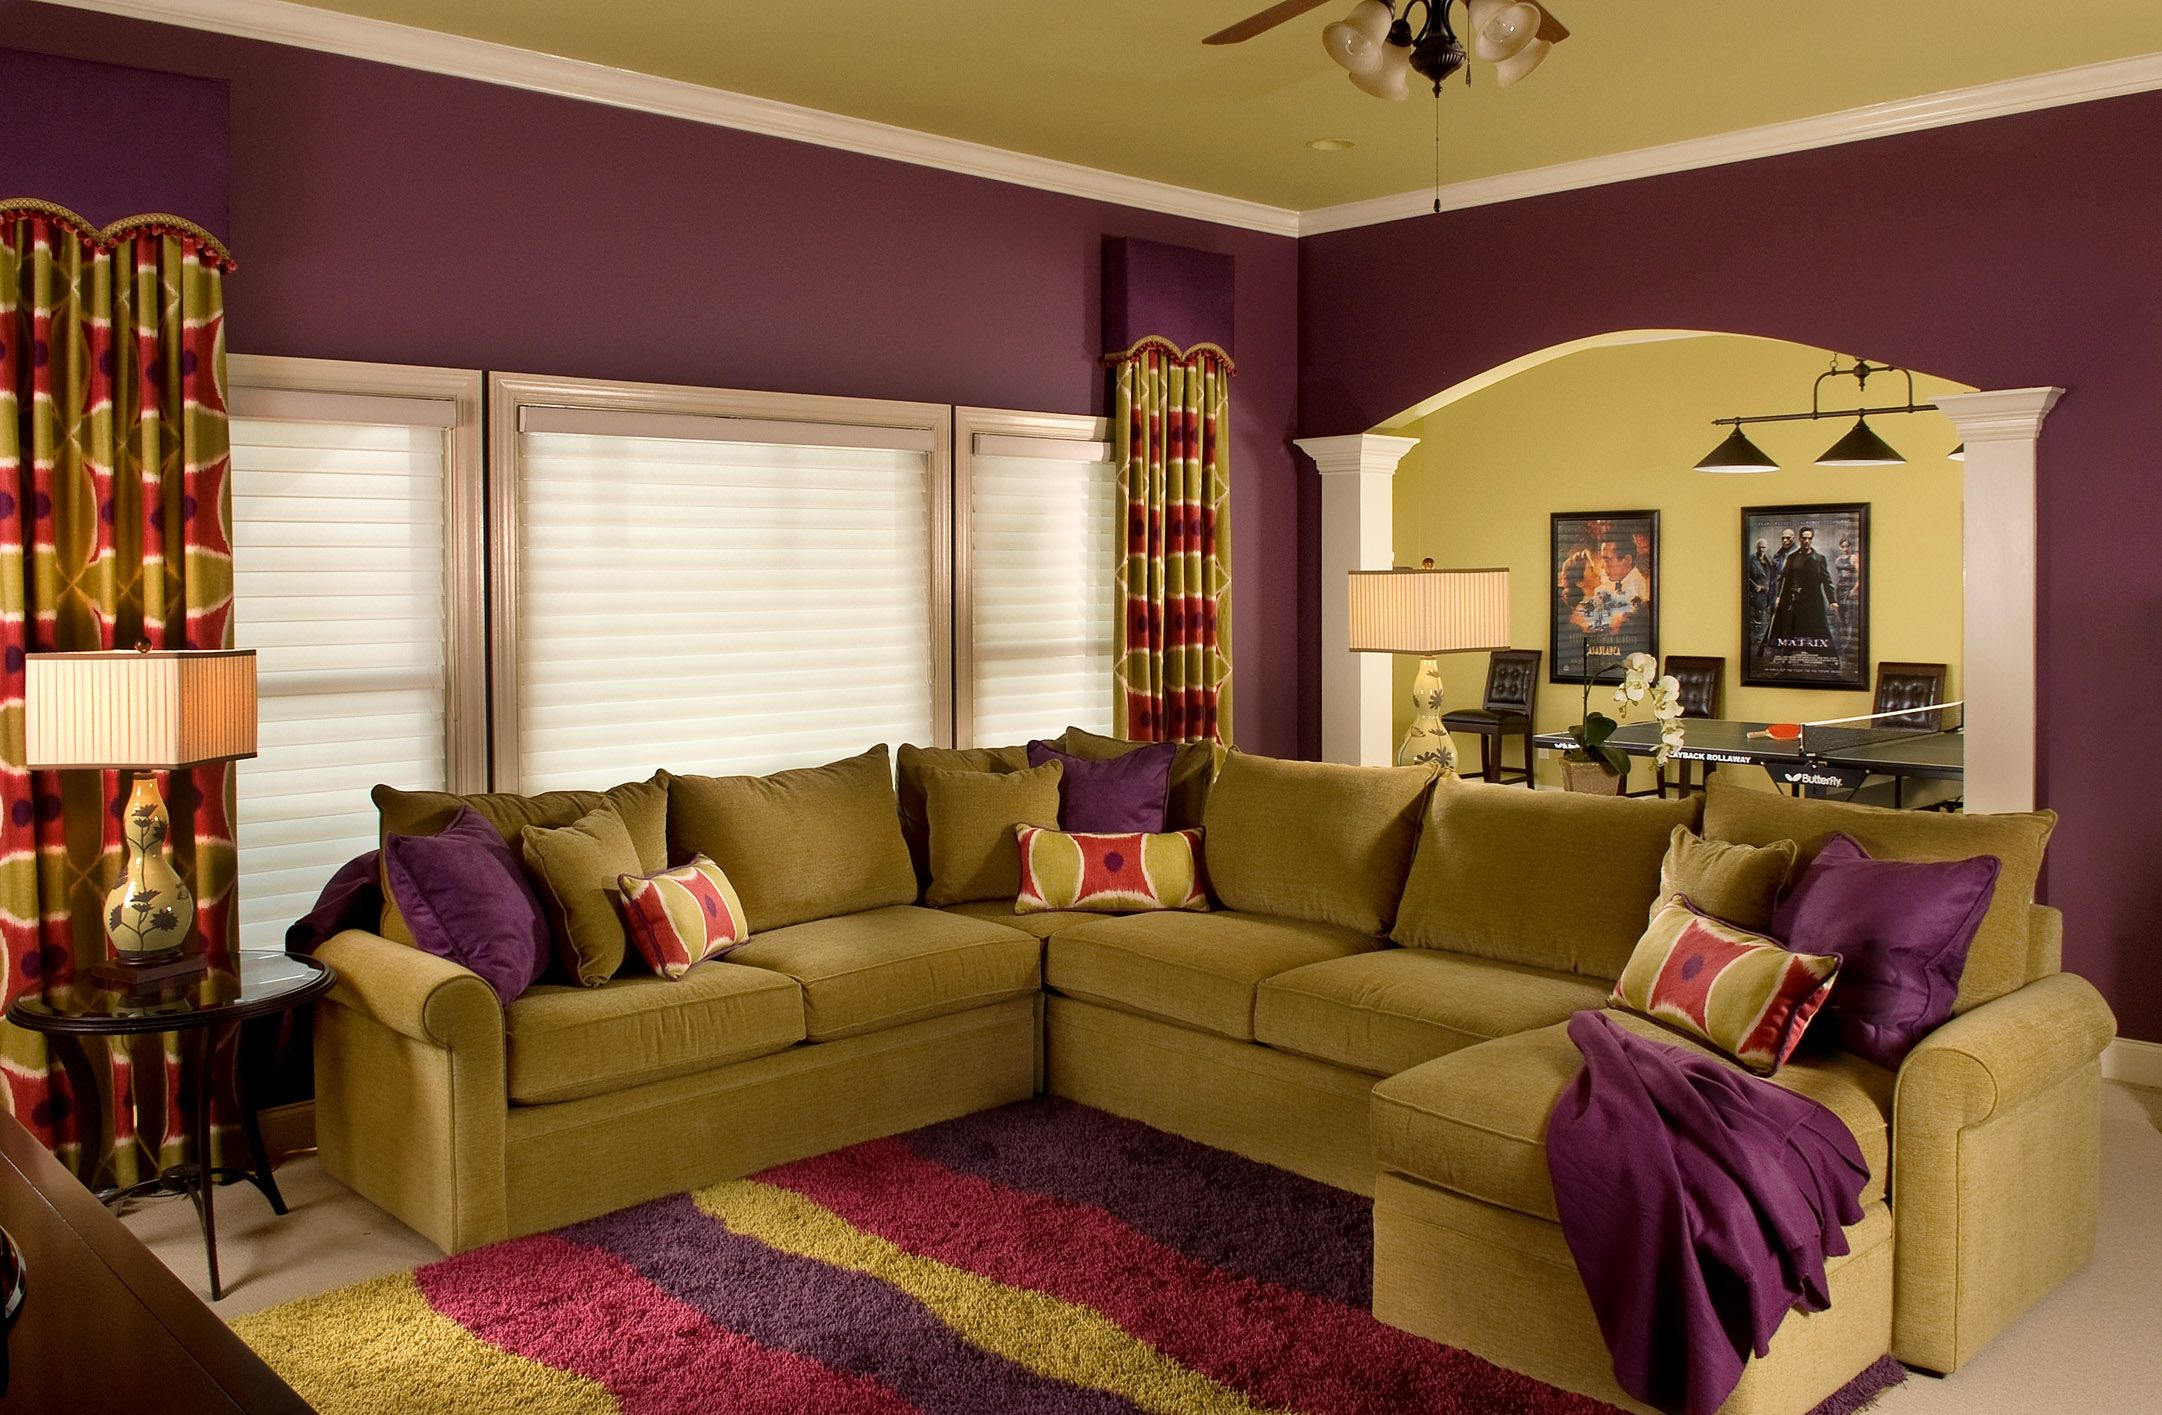 Beautiful And Awesome Bedroom Painting Design Ideas Purple Living Room  Decorating Paint Color Ideas Comfy Sofa  Pillows Beautiful Draperies Colorfulu2026